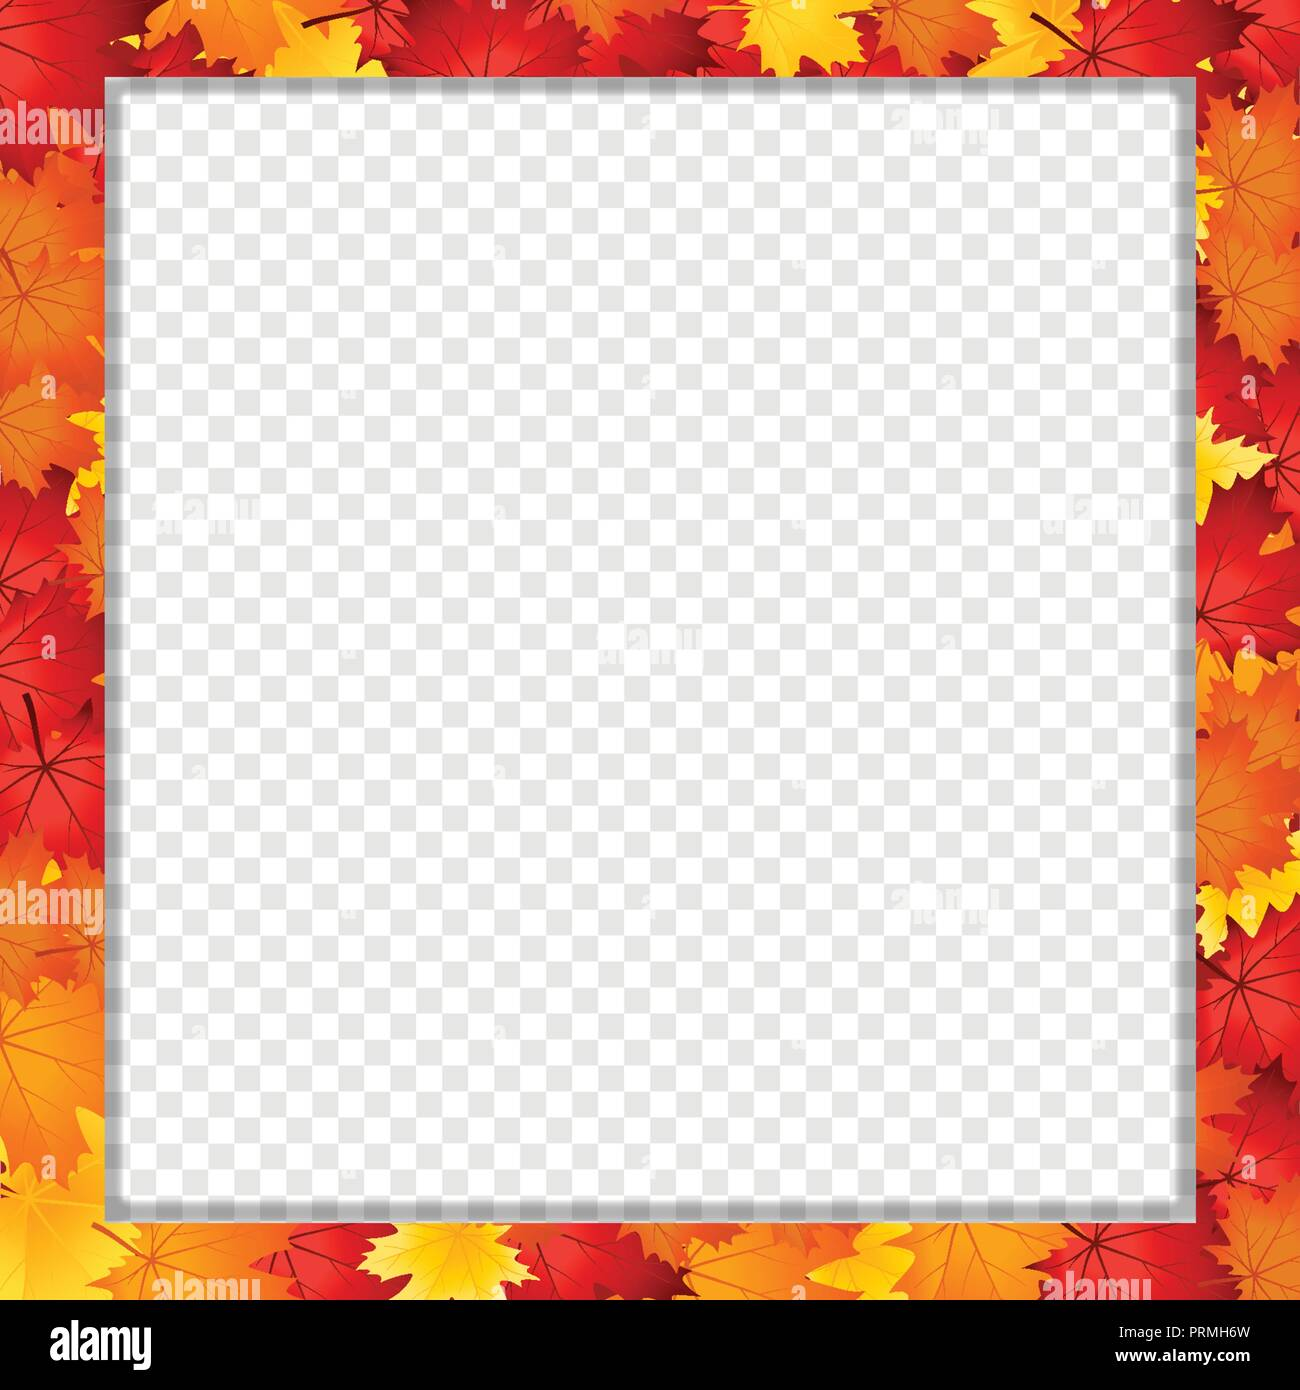 Vector Square Photo Frame Border With Fallen Autumn Leafage On